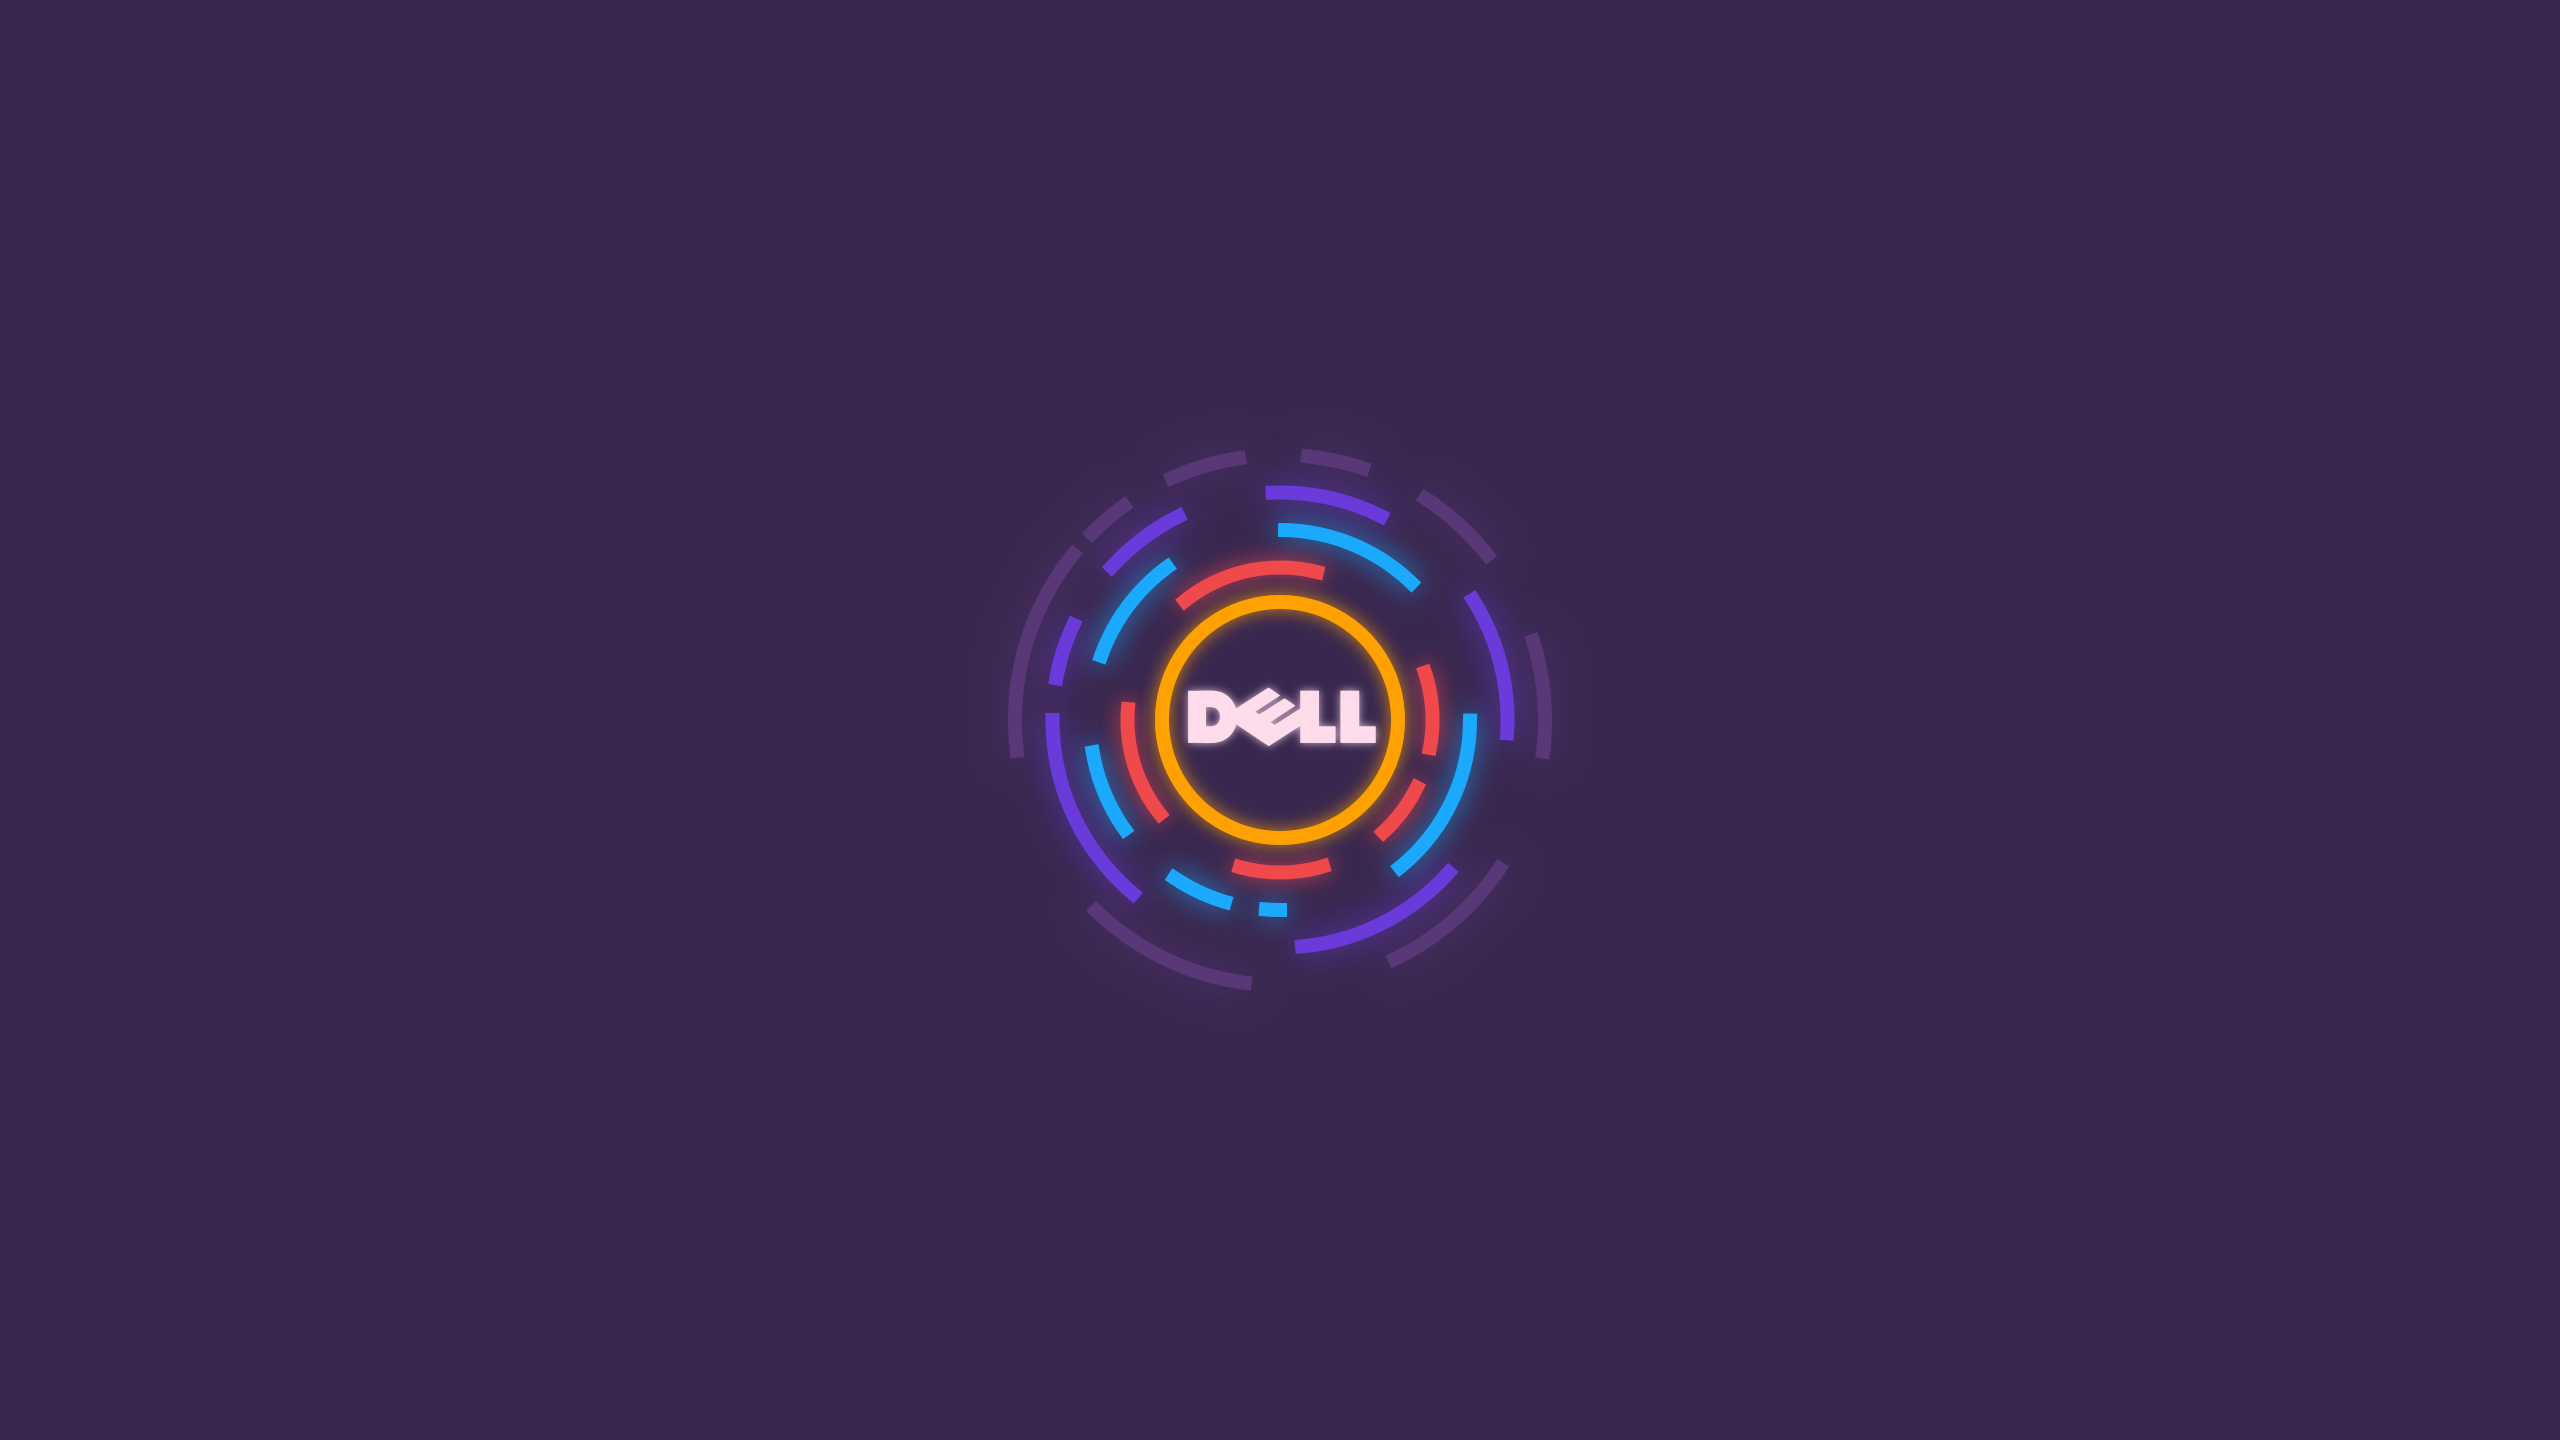 Cute Wallpapers For Girls Mobile Dell Logo Minimalism Hd Computer 4k Wallpapers Images